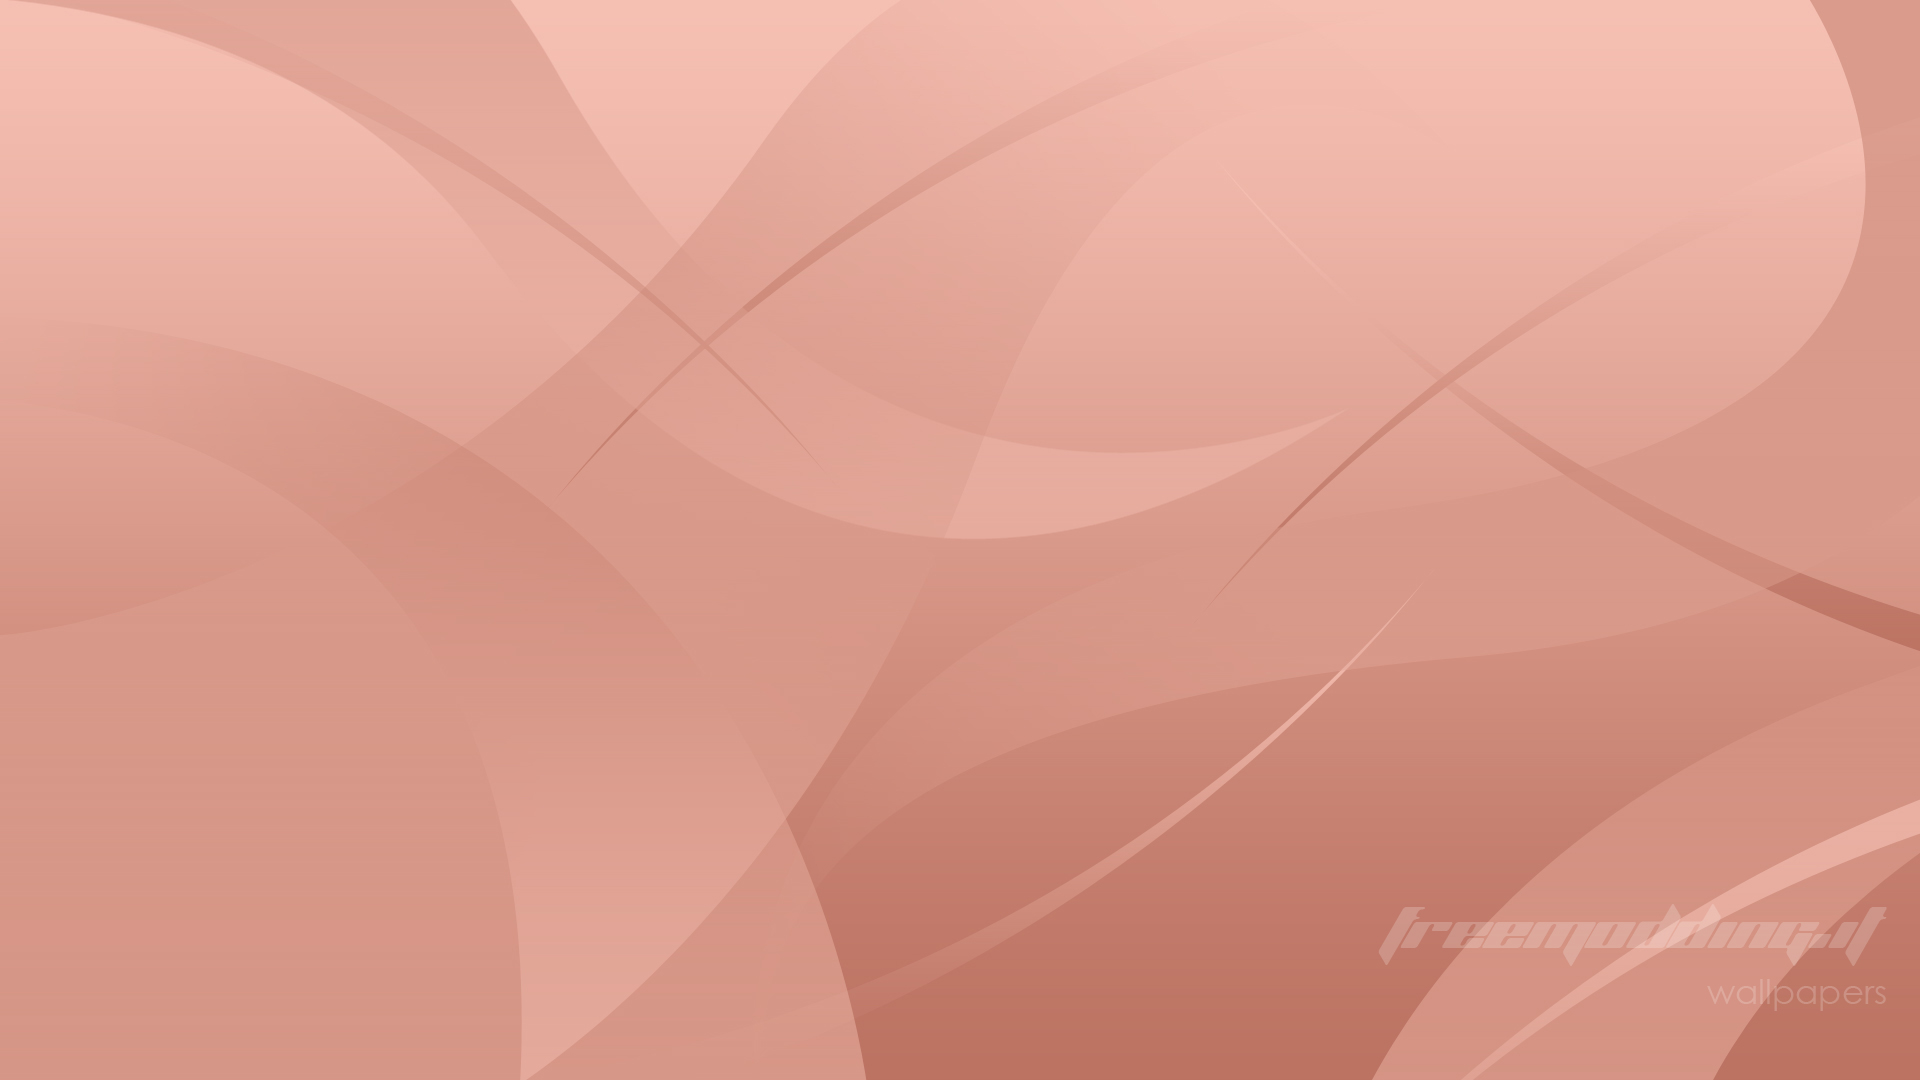 Tentacles Antique Pink Hd Wallpaper By Freemodding On Deviantart